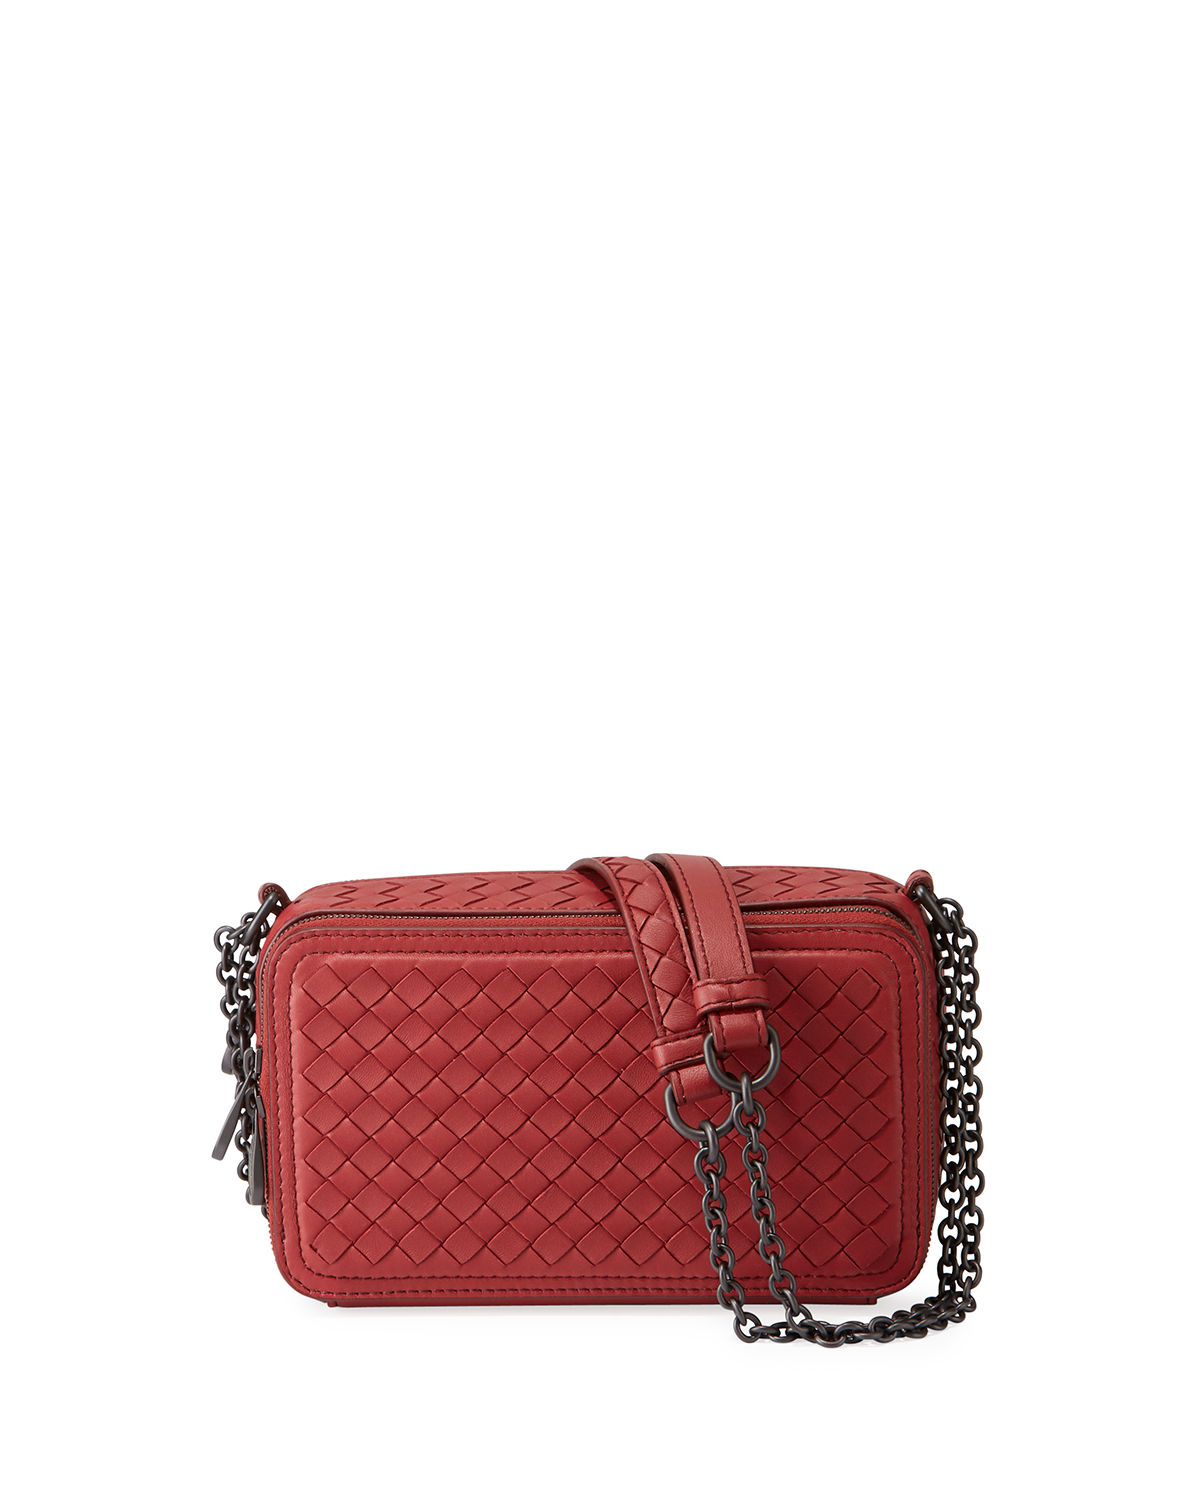 fe706c6829 Bottega Veneta Intrecciato Leather Zip-Around Box Crossbody Bag ...